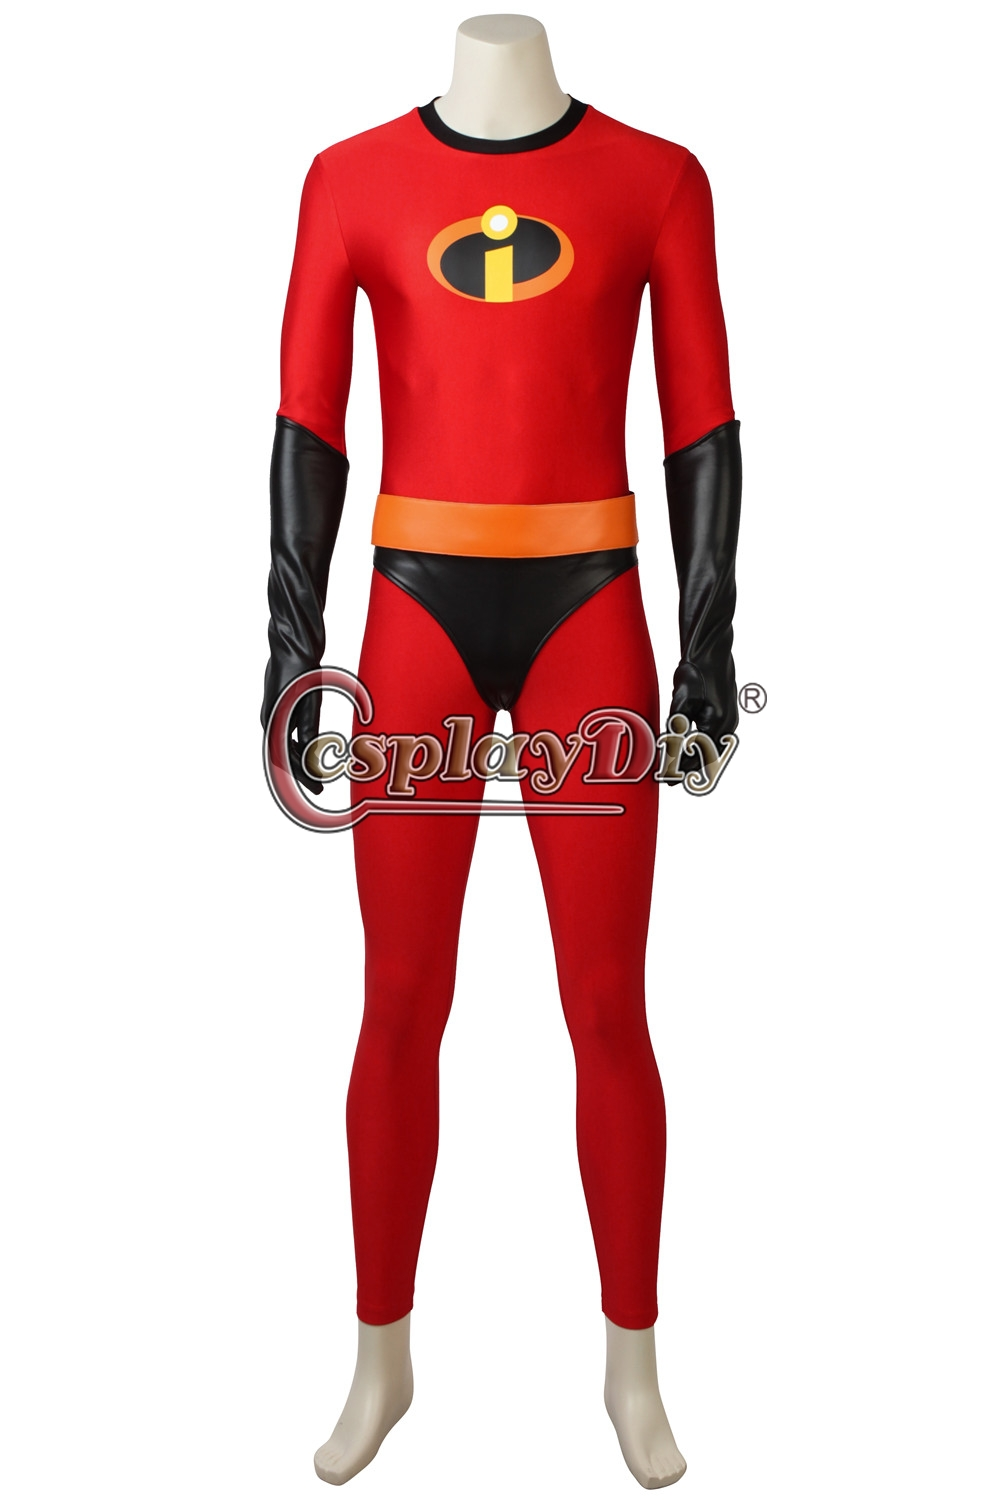 incredibles 2 bob parr mr incredible red jumpsuit for halloween party cosplay costume